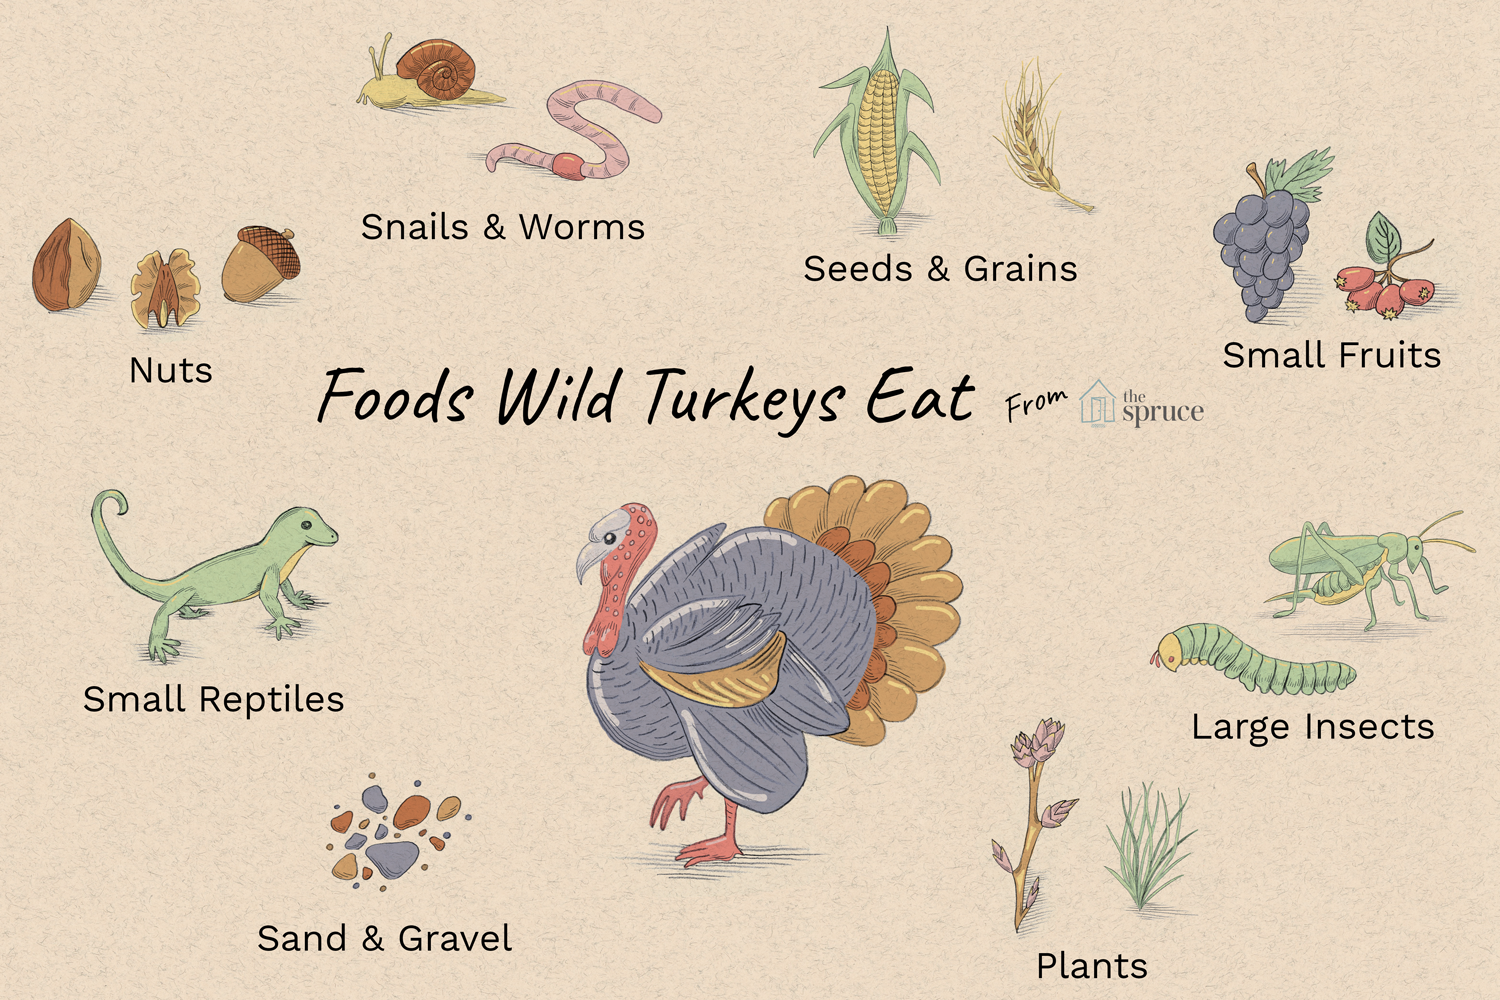 Foods Wild Turkeys Eat - 2019   Graphite and Adobe Photoshop